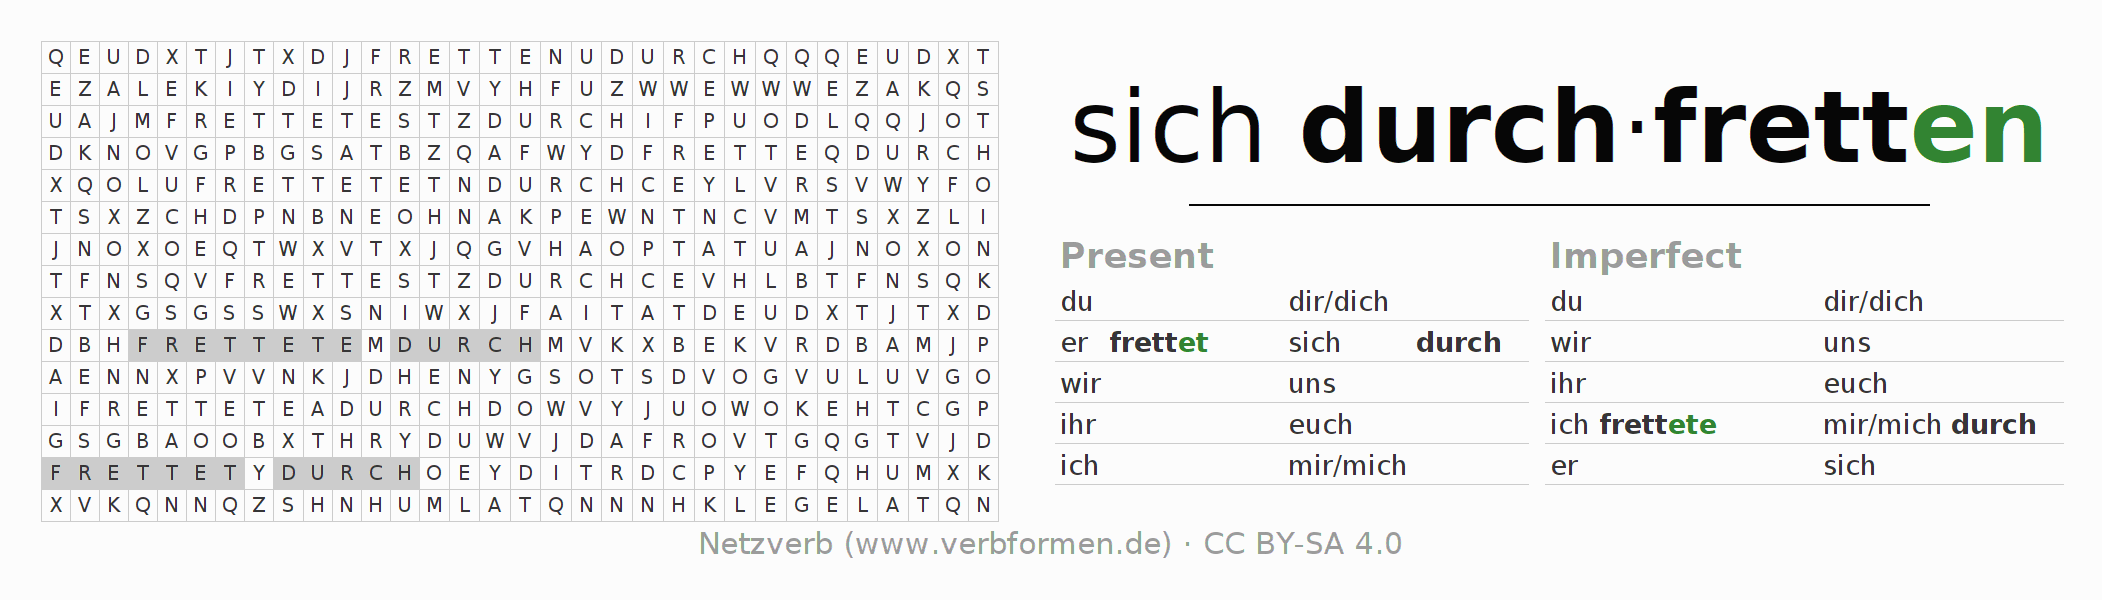 Word search puzzle for the conjugation of the verb sich durchfretten